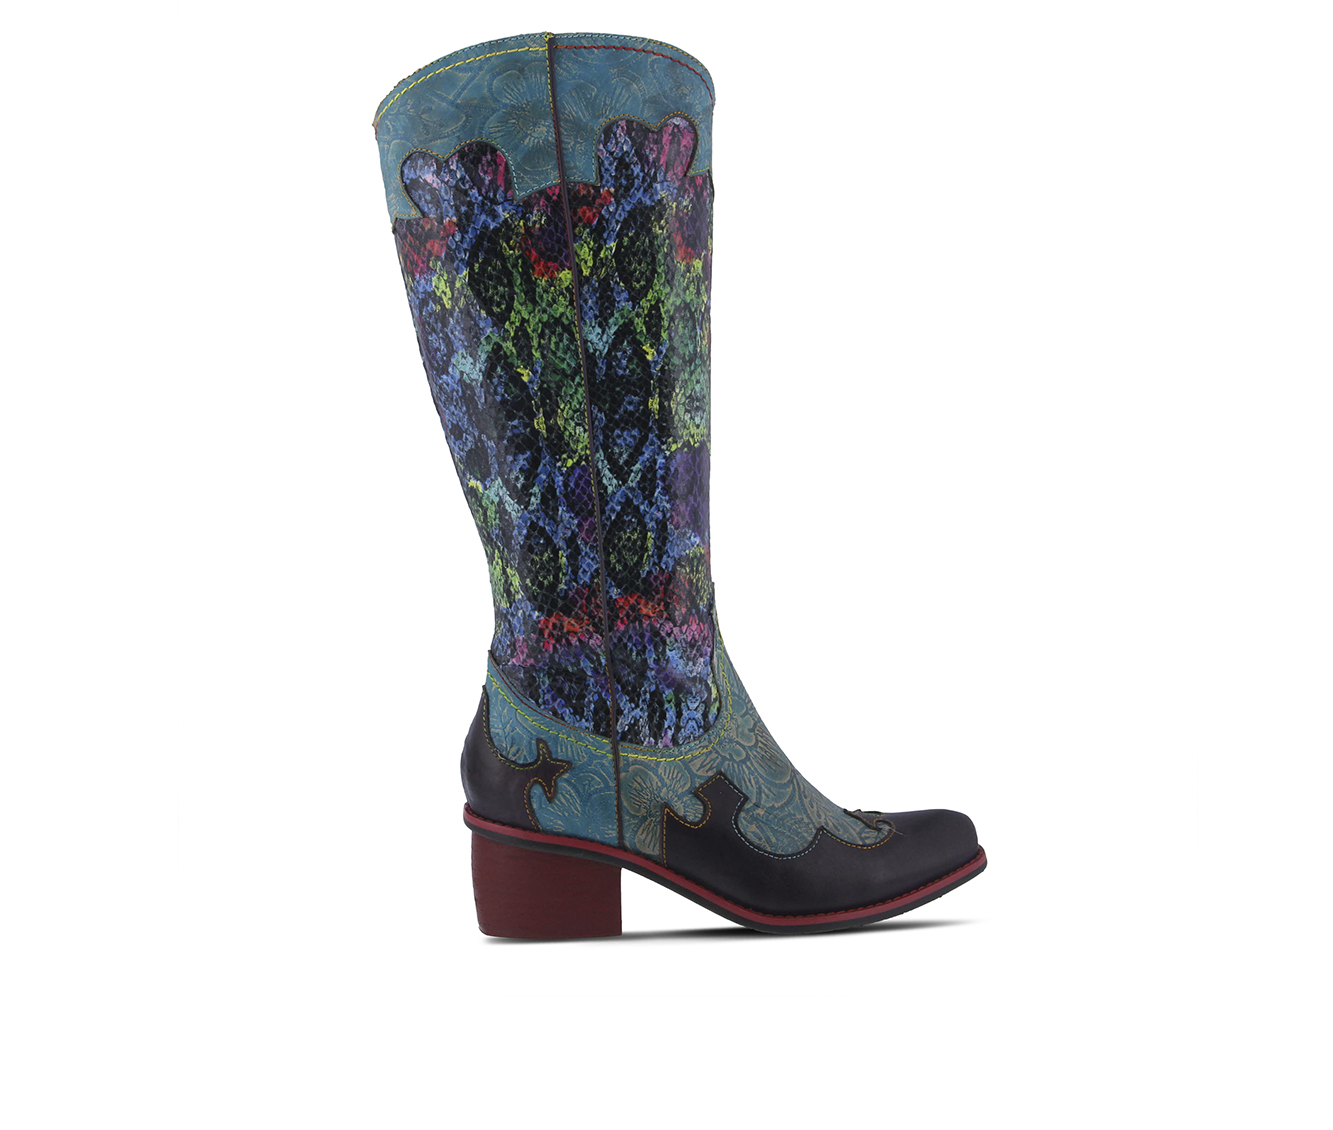 L'Artiste Rodeo Women's Boots (Blue Leather)